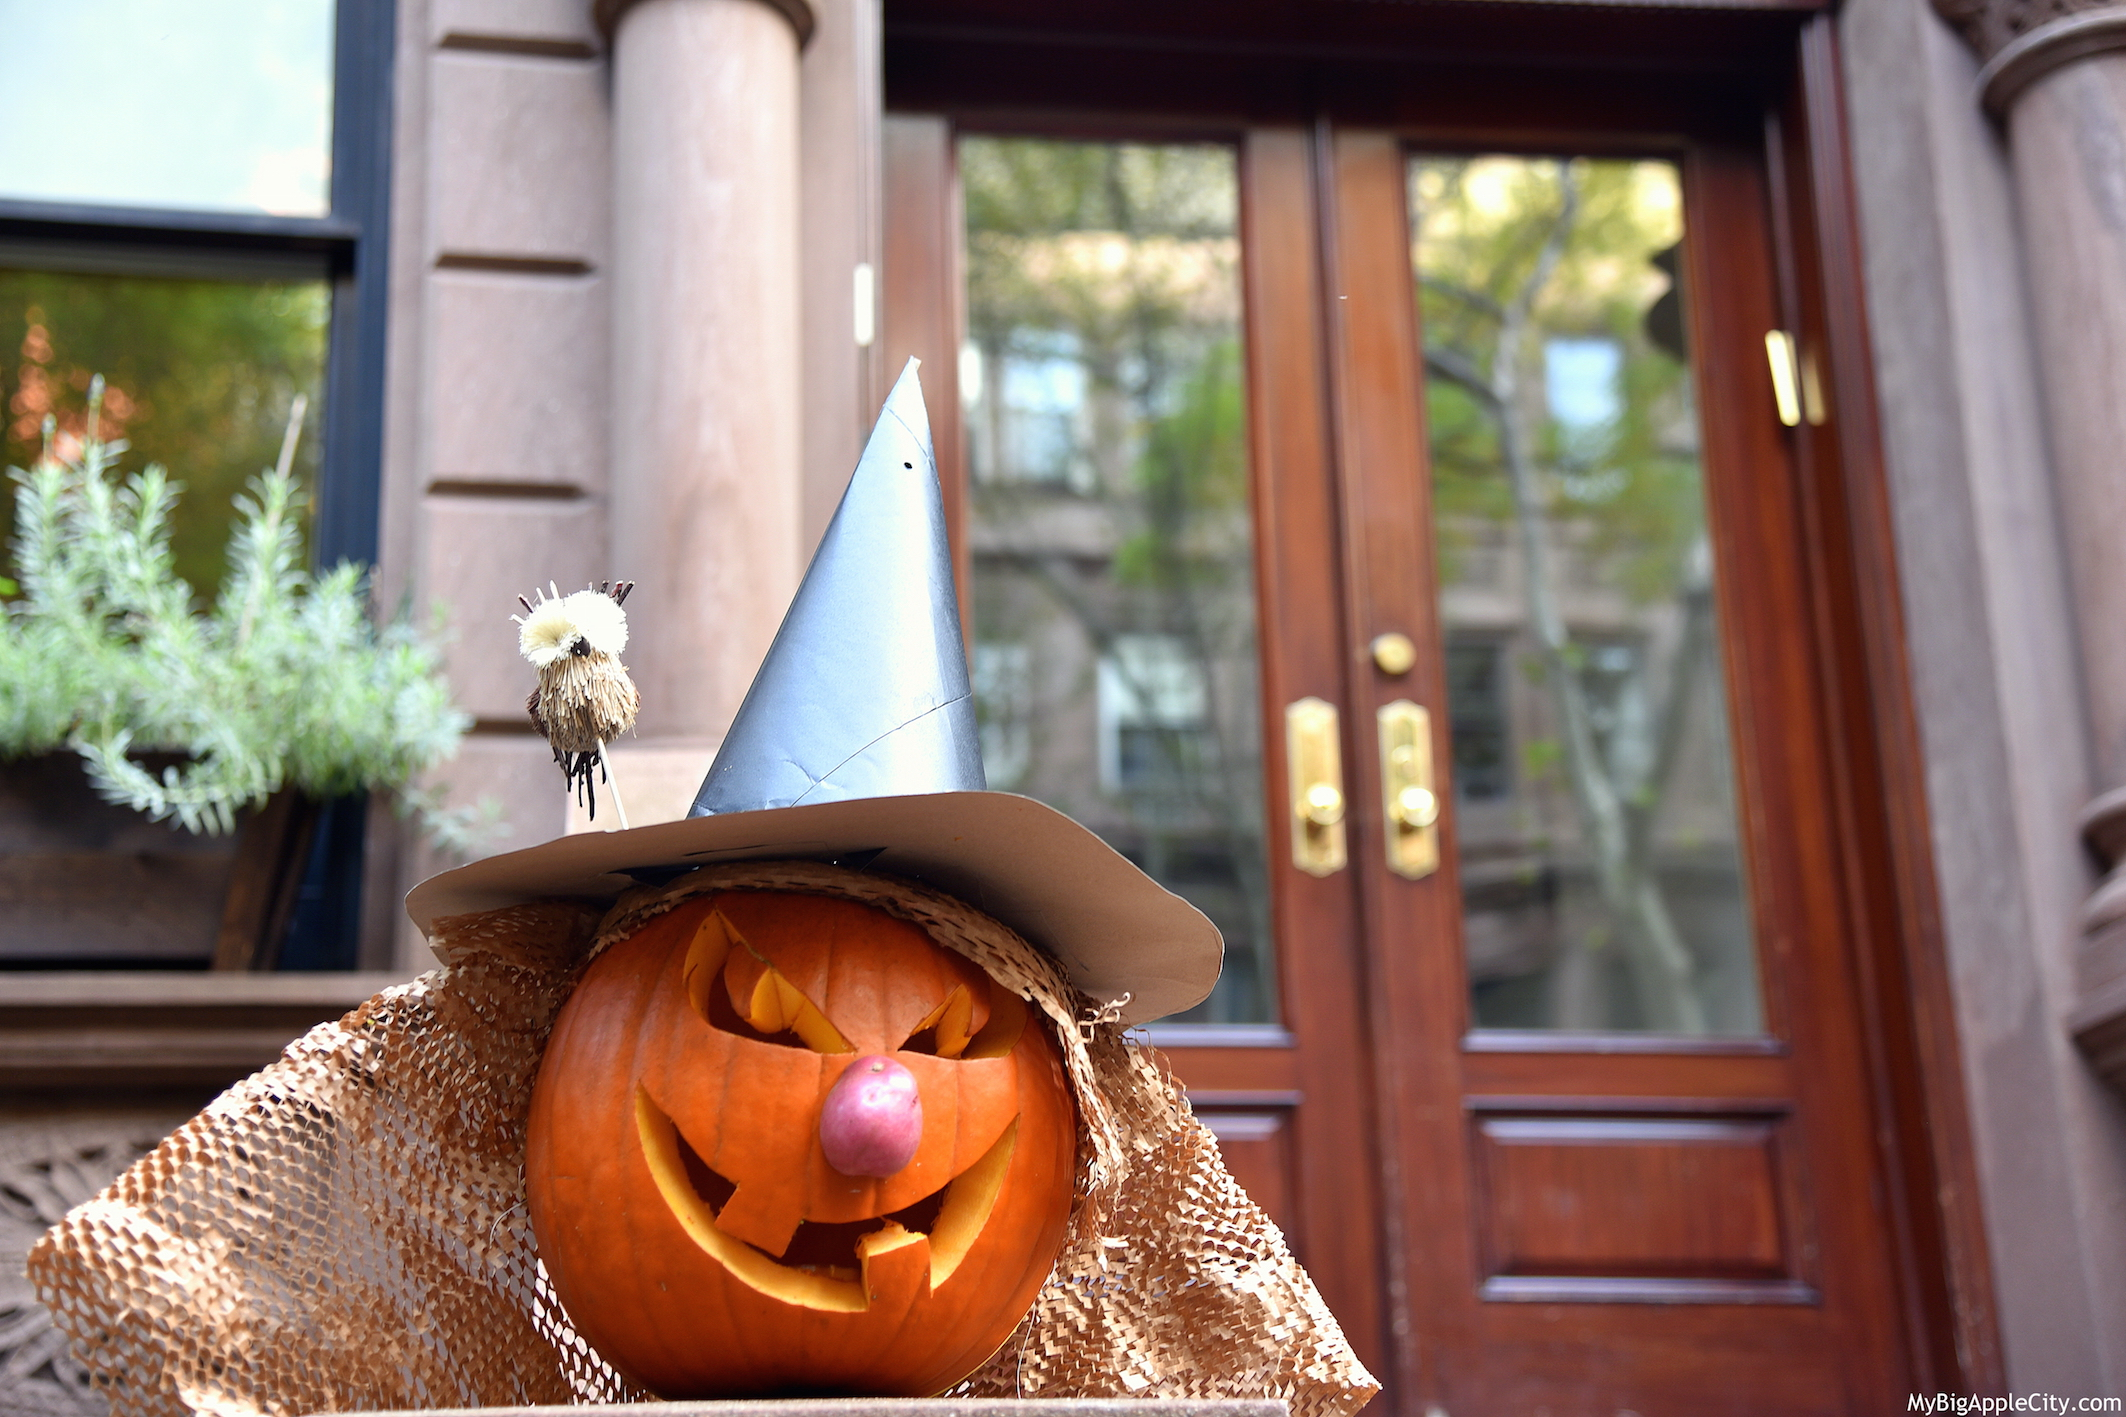 Pumpkin-Halloween-NYC-2015-Lifestyle-blog-newyork